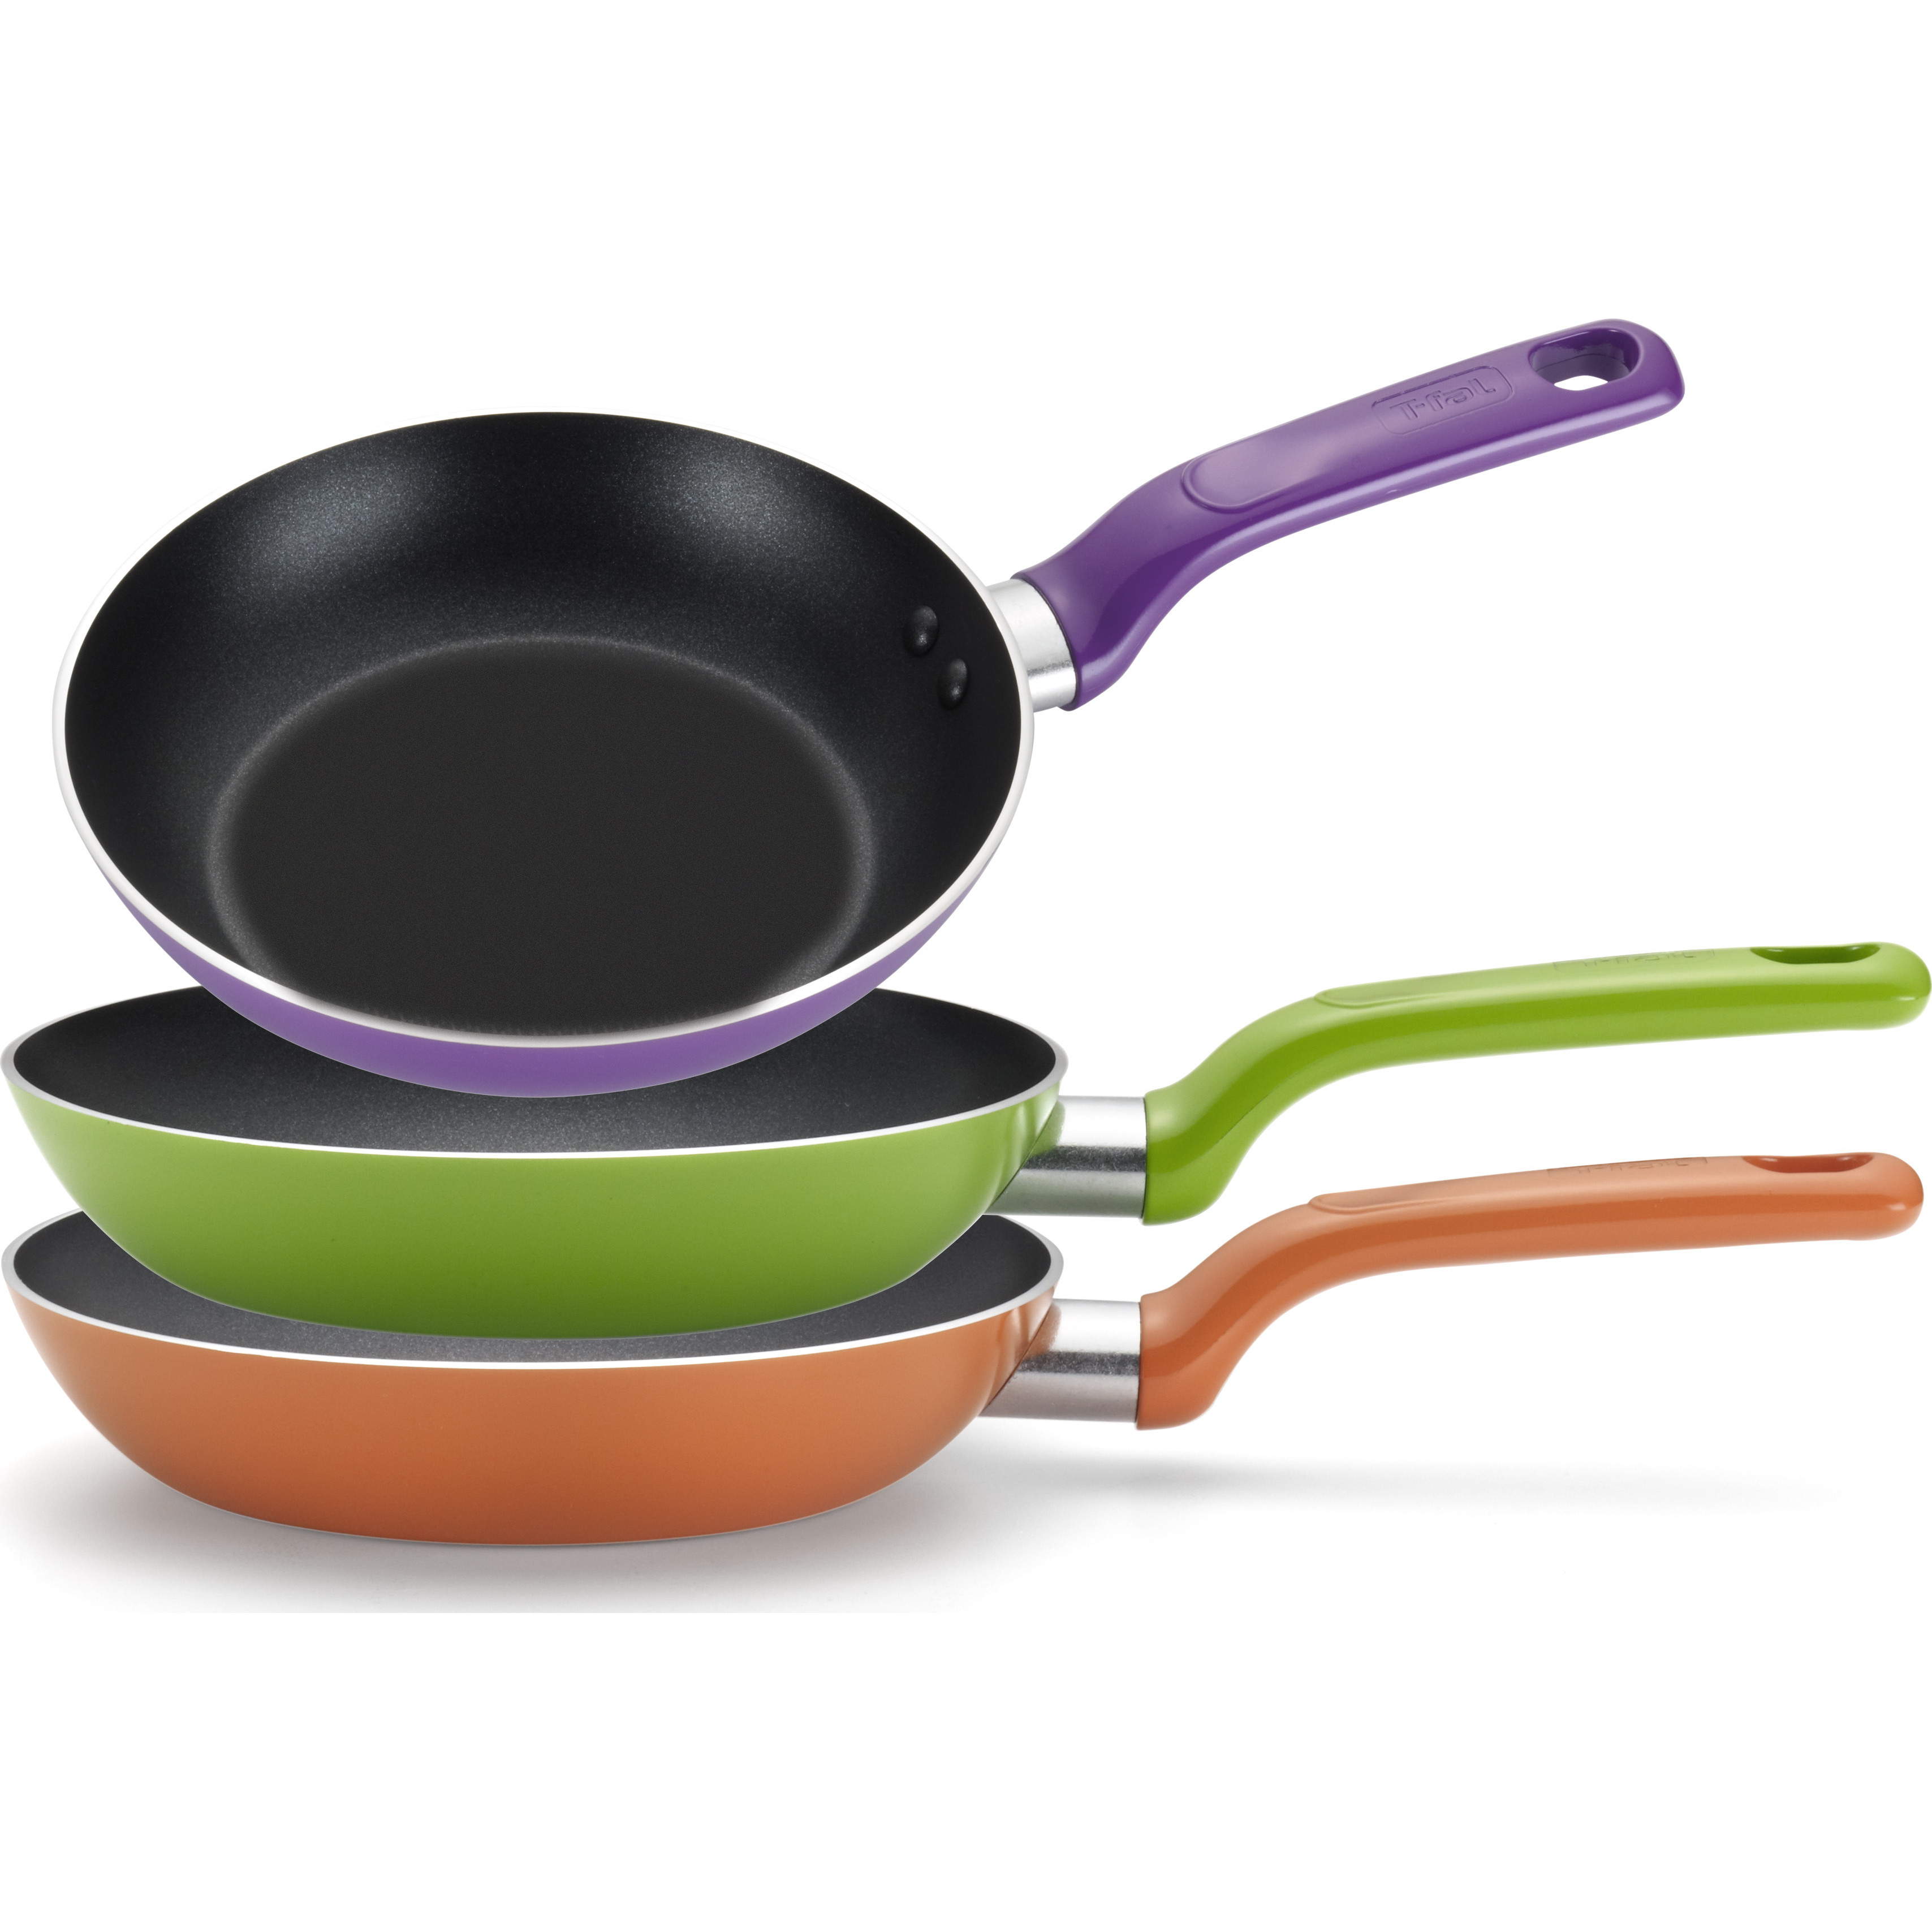 "T-fal, Enjoy Nonstick, C732S2, Dishwasher Safe Cookware, 8"", 9.5"" & 11"" Fry Pans, 3 Pc. Set, Green, Purple, Orange"